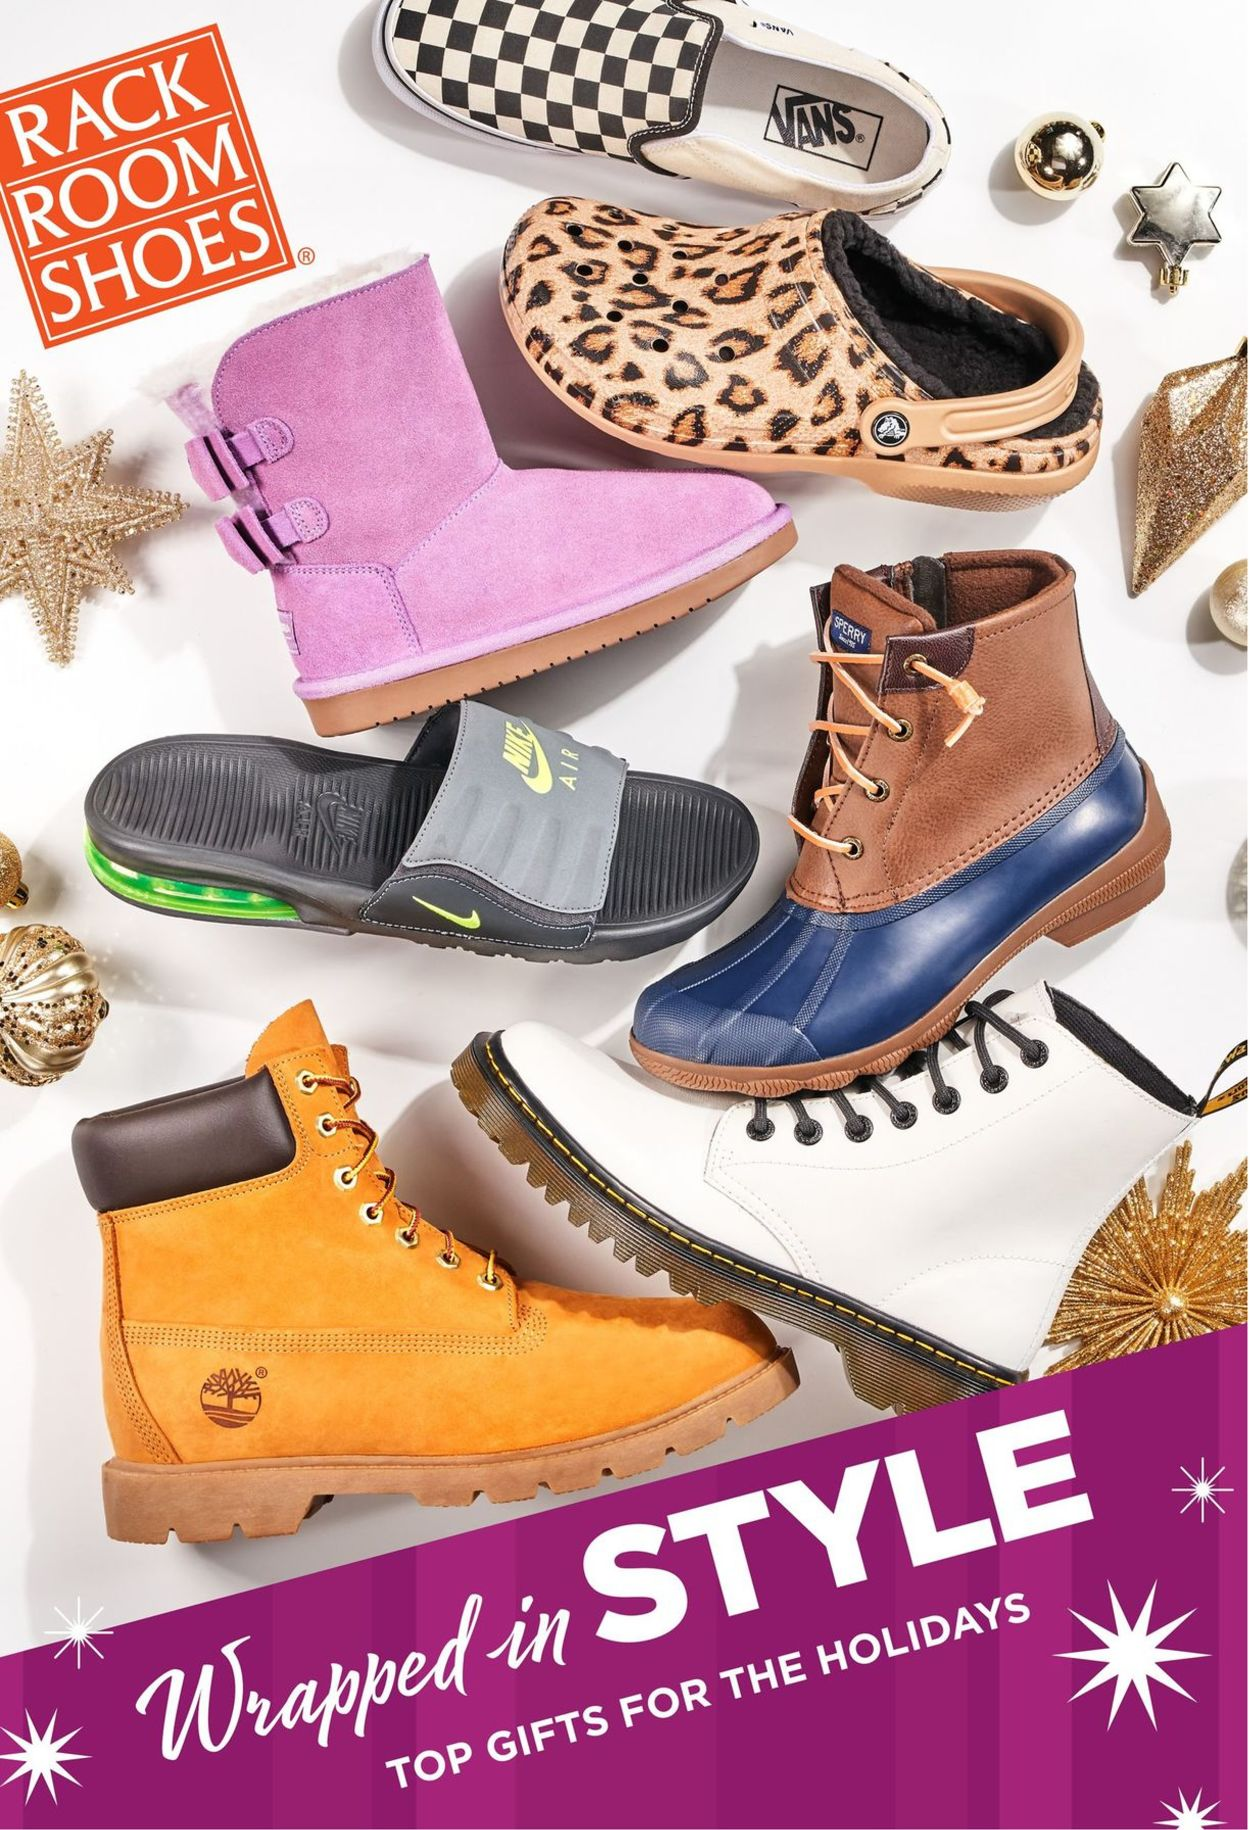 Rack Room Shoes Current weekly ad 11/30